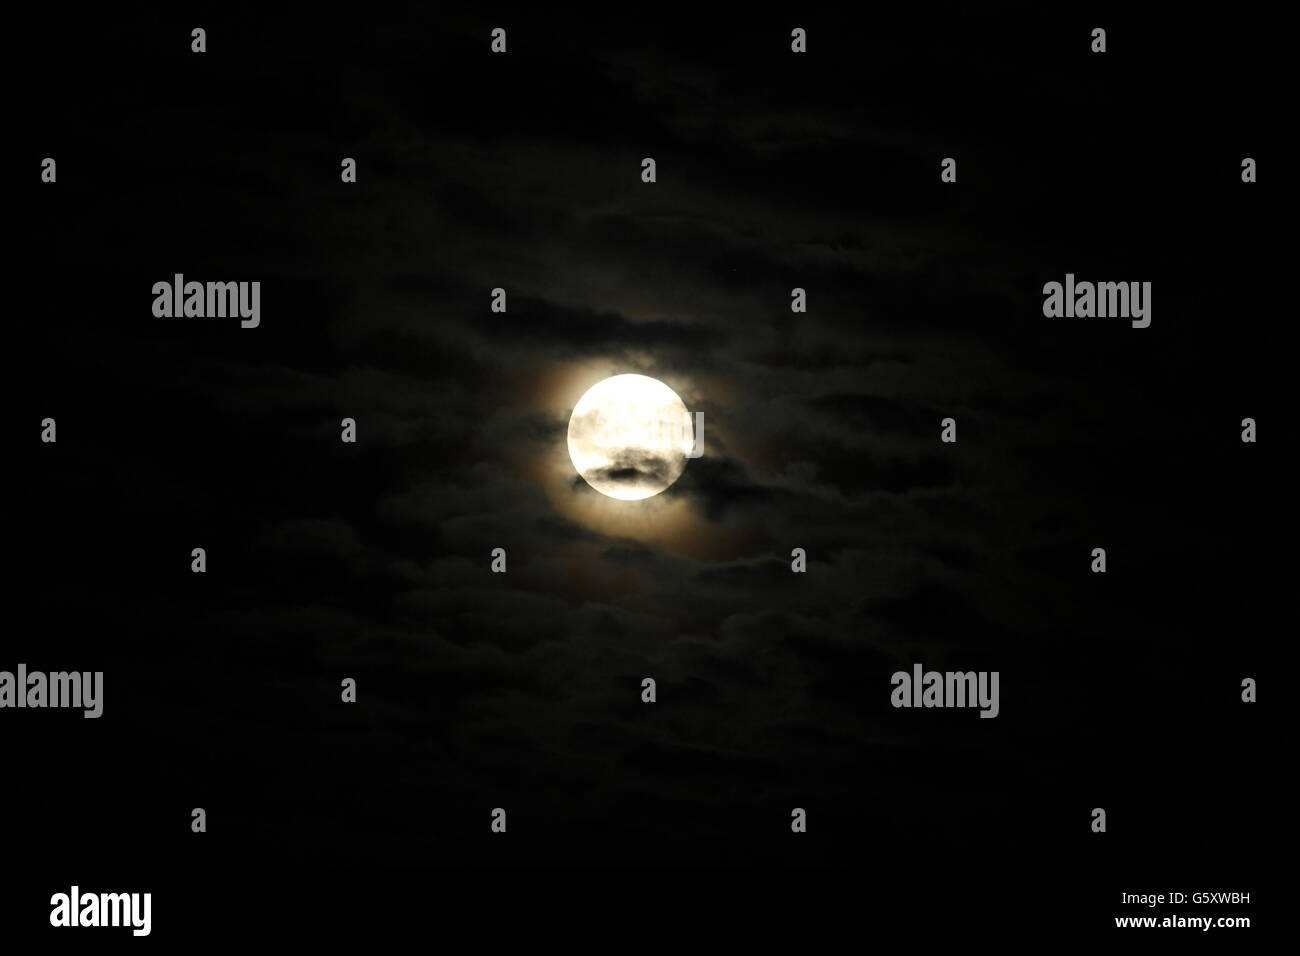 Full moon, darkness, night time, June 2016 - Stock Image